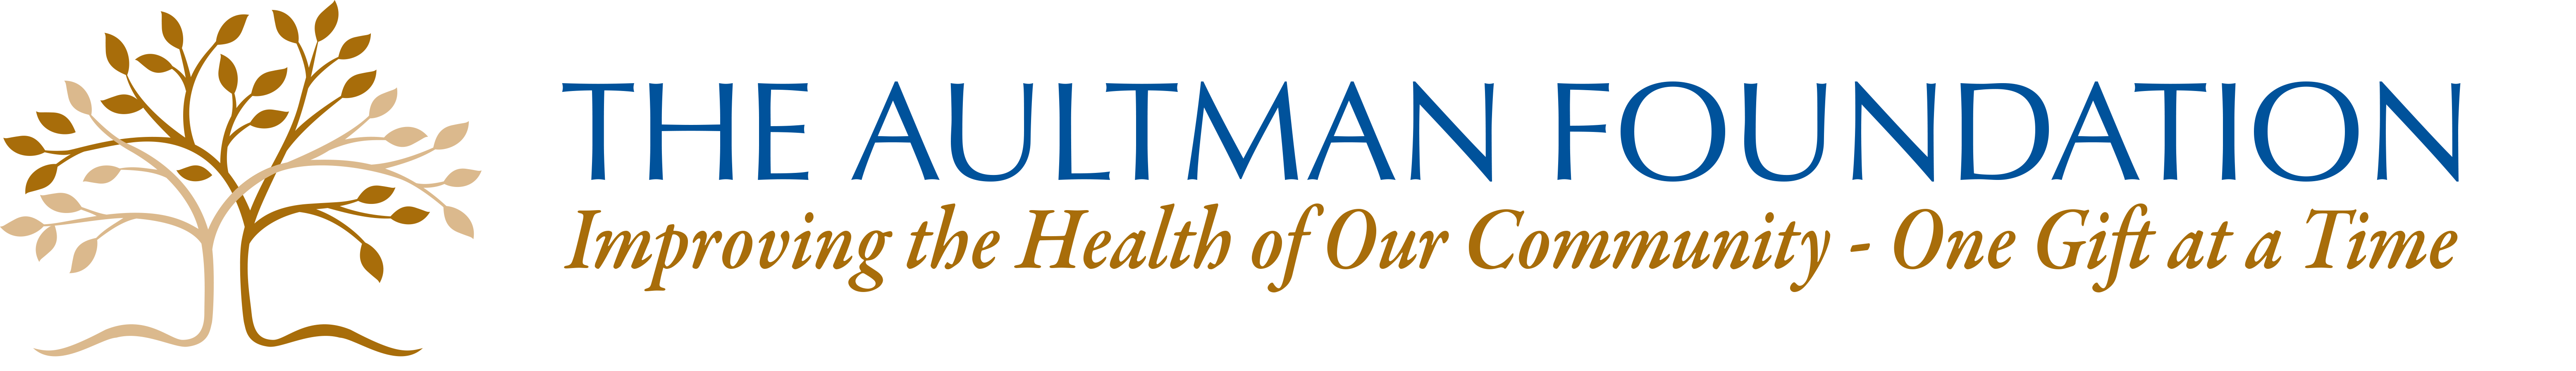 The Aultman Foundation